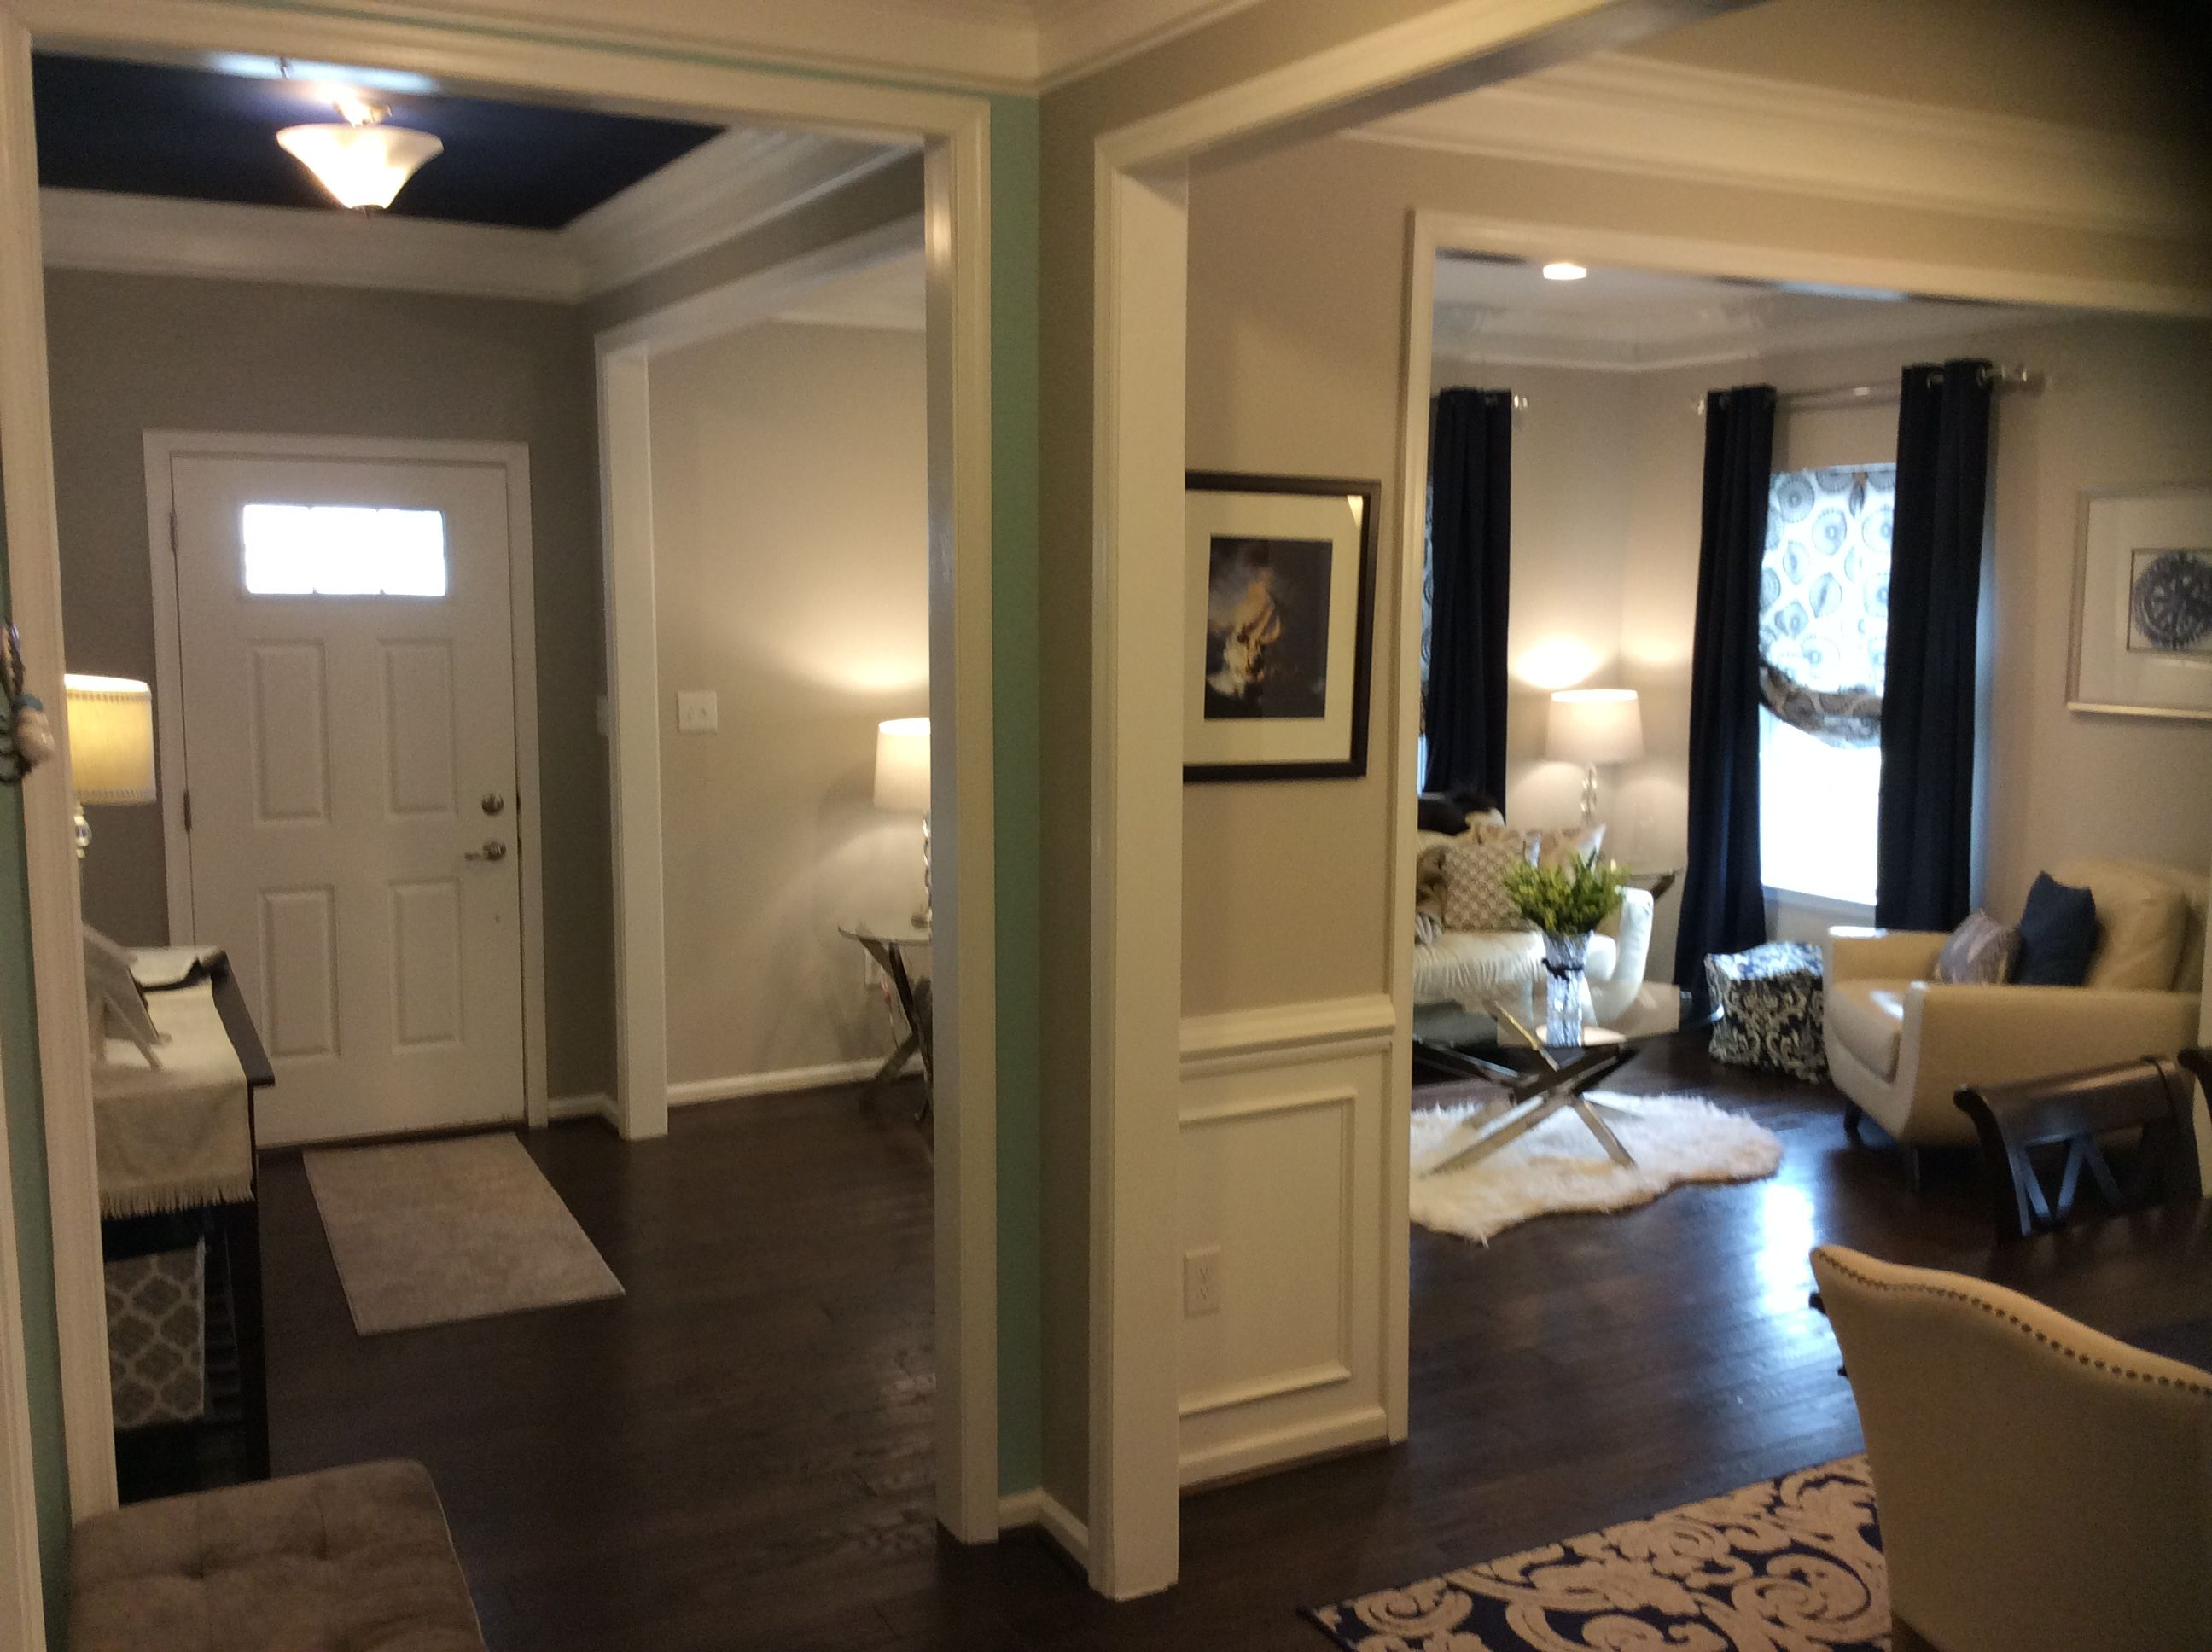 ryan homes rome model foyer, entryway, formal living room and